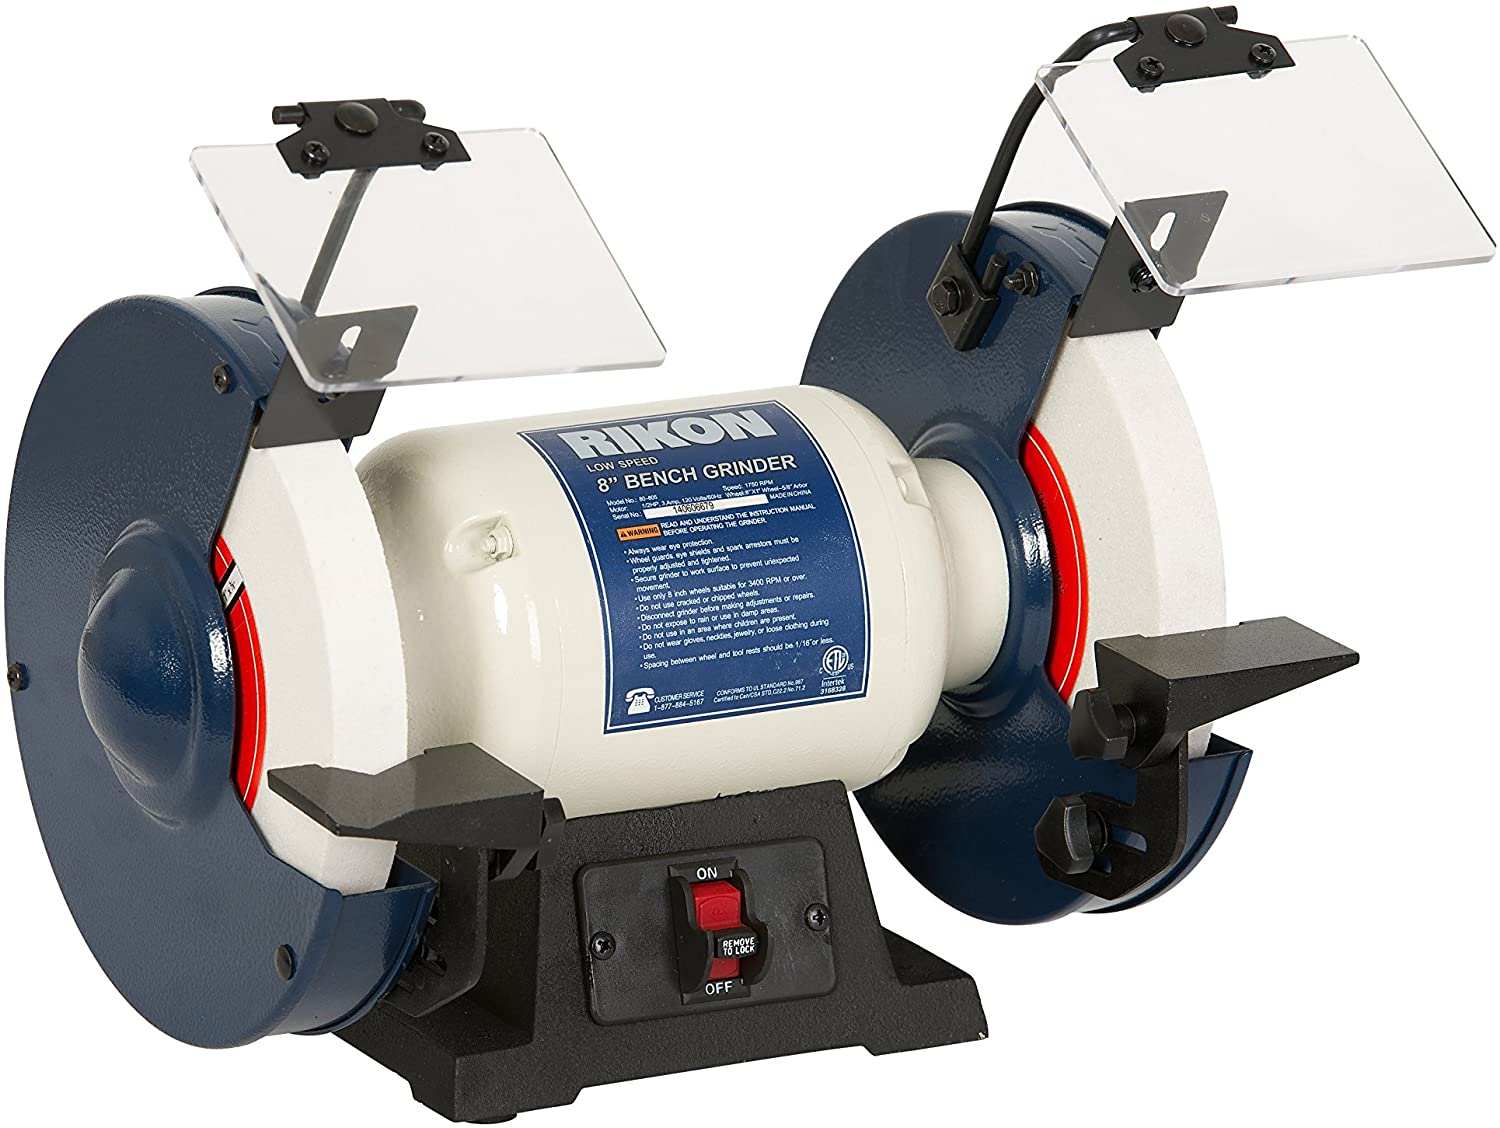 RIKON Professional Power Tools, 80-805, 8 inch Slow Speed Bench Grinder